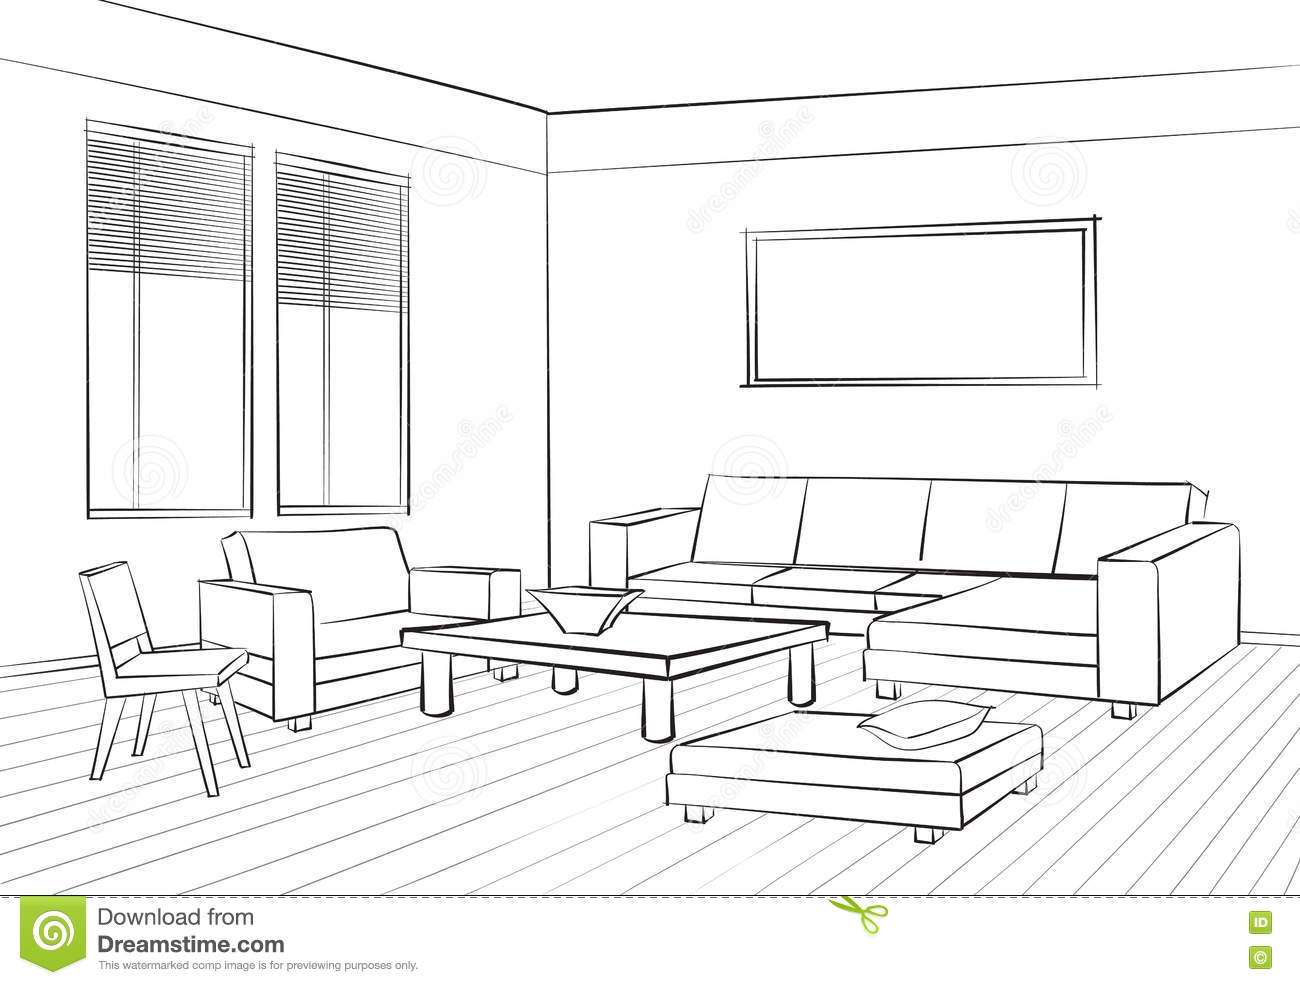 Living Room Design Room Interior Sketch Interior Furniture  : living room design room interior sketch interior furniture conc home sofa armchair table drawing engraves hand drawing 73300147 from www.dreamstime.com size 1300 x 985 jpeg 117kB